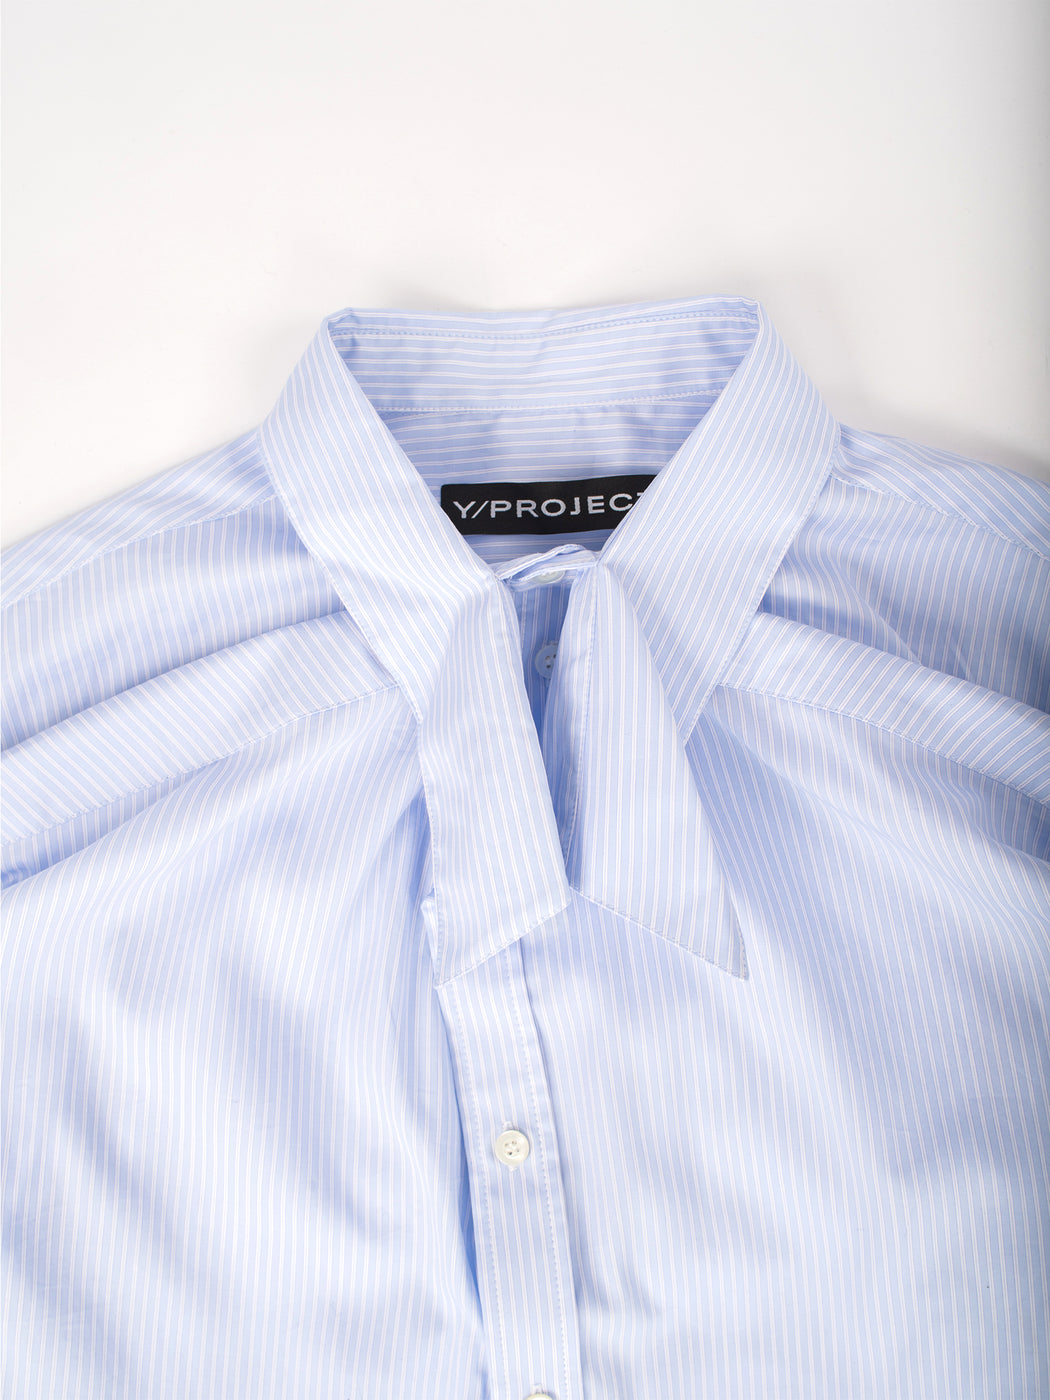 Skinny Shirt - Blue Stripes